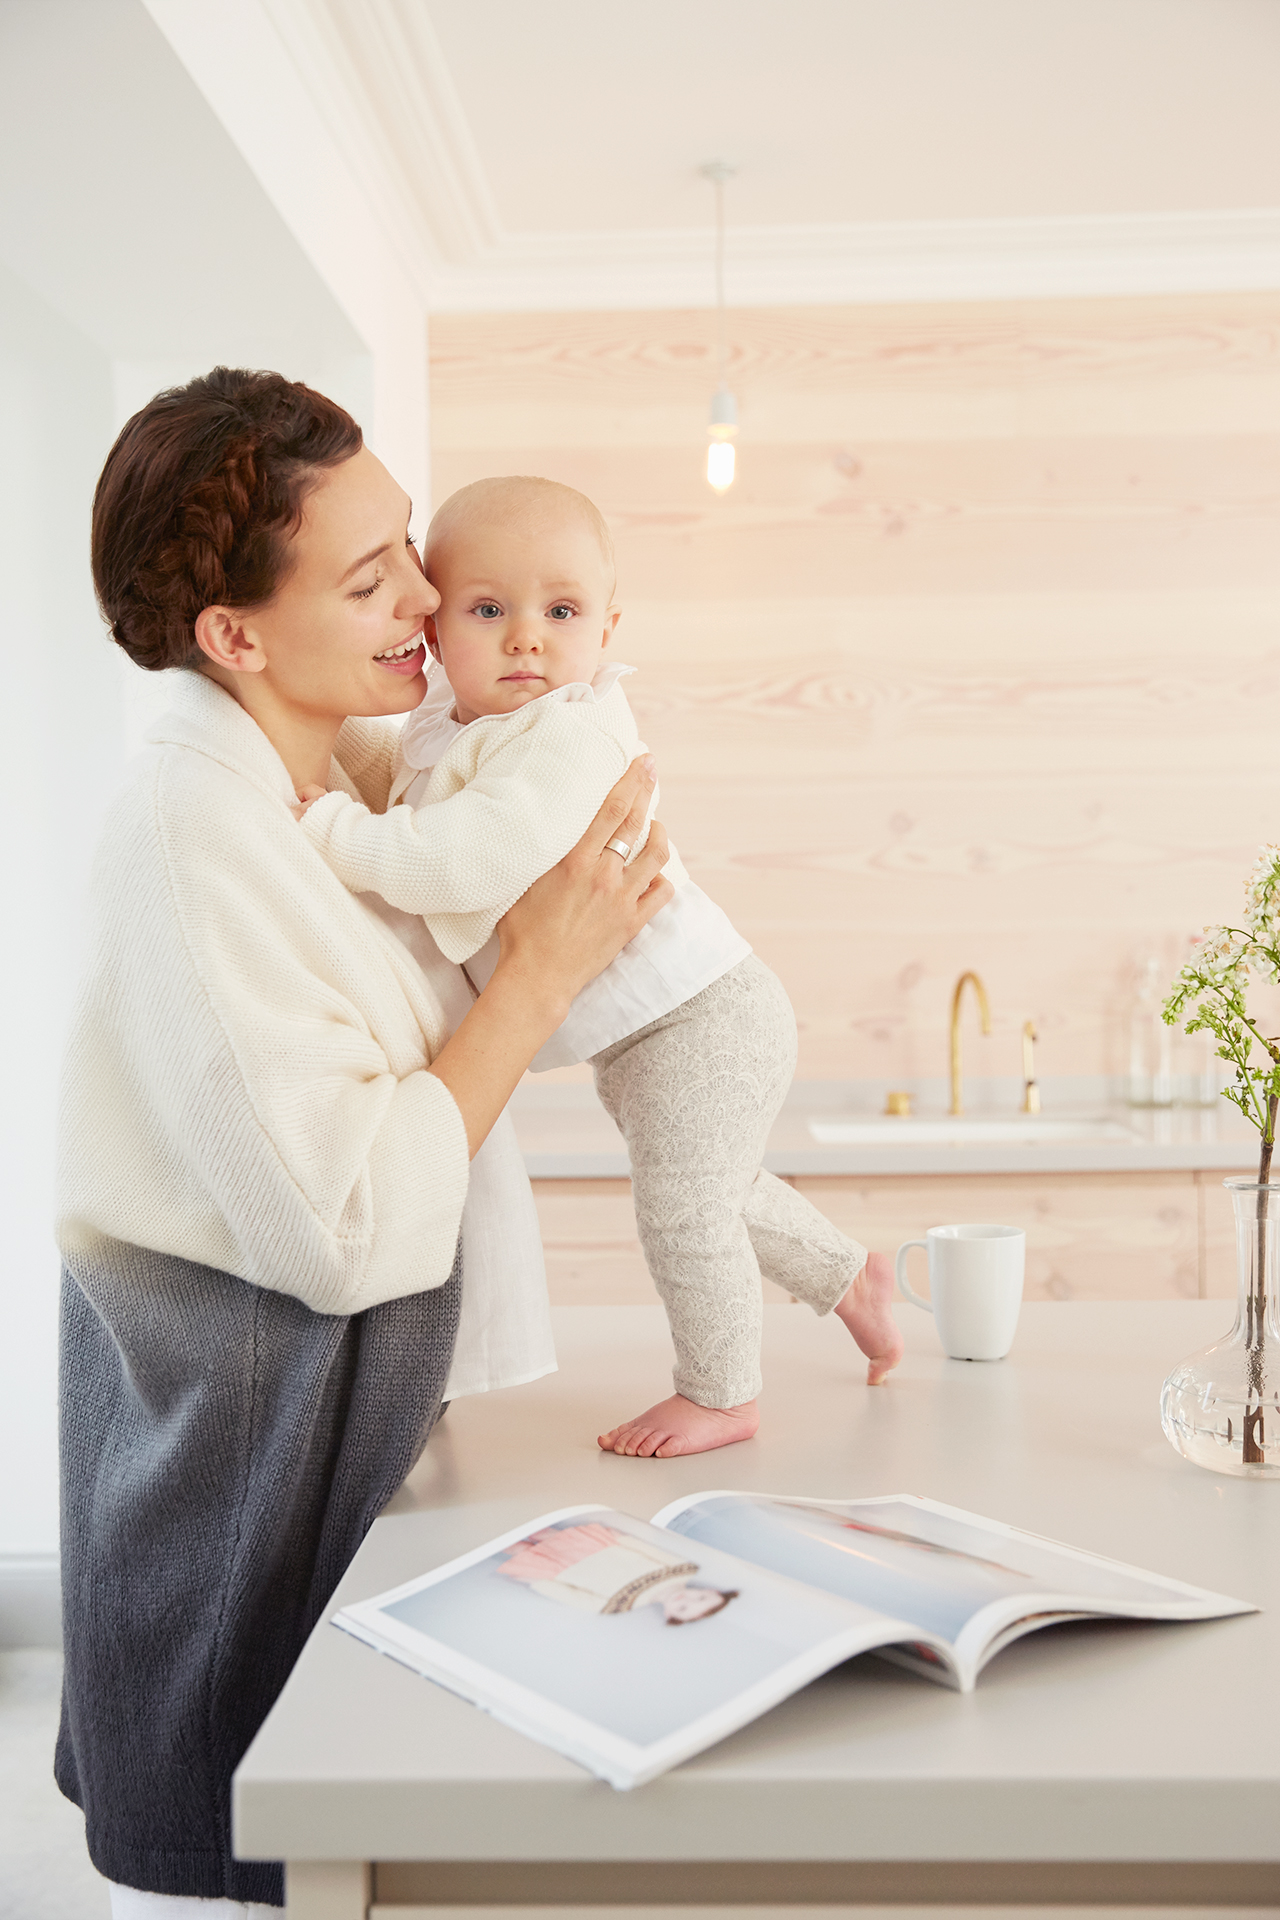 Mother with baby playing on kitchen counter